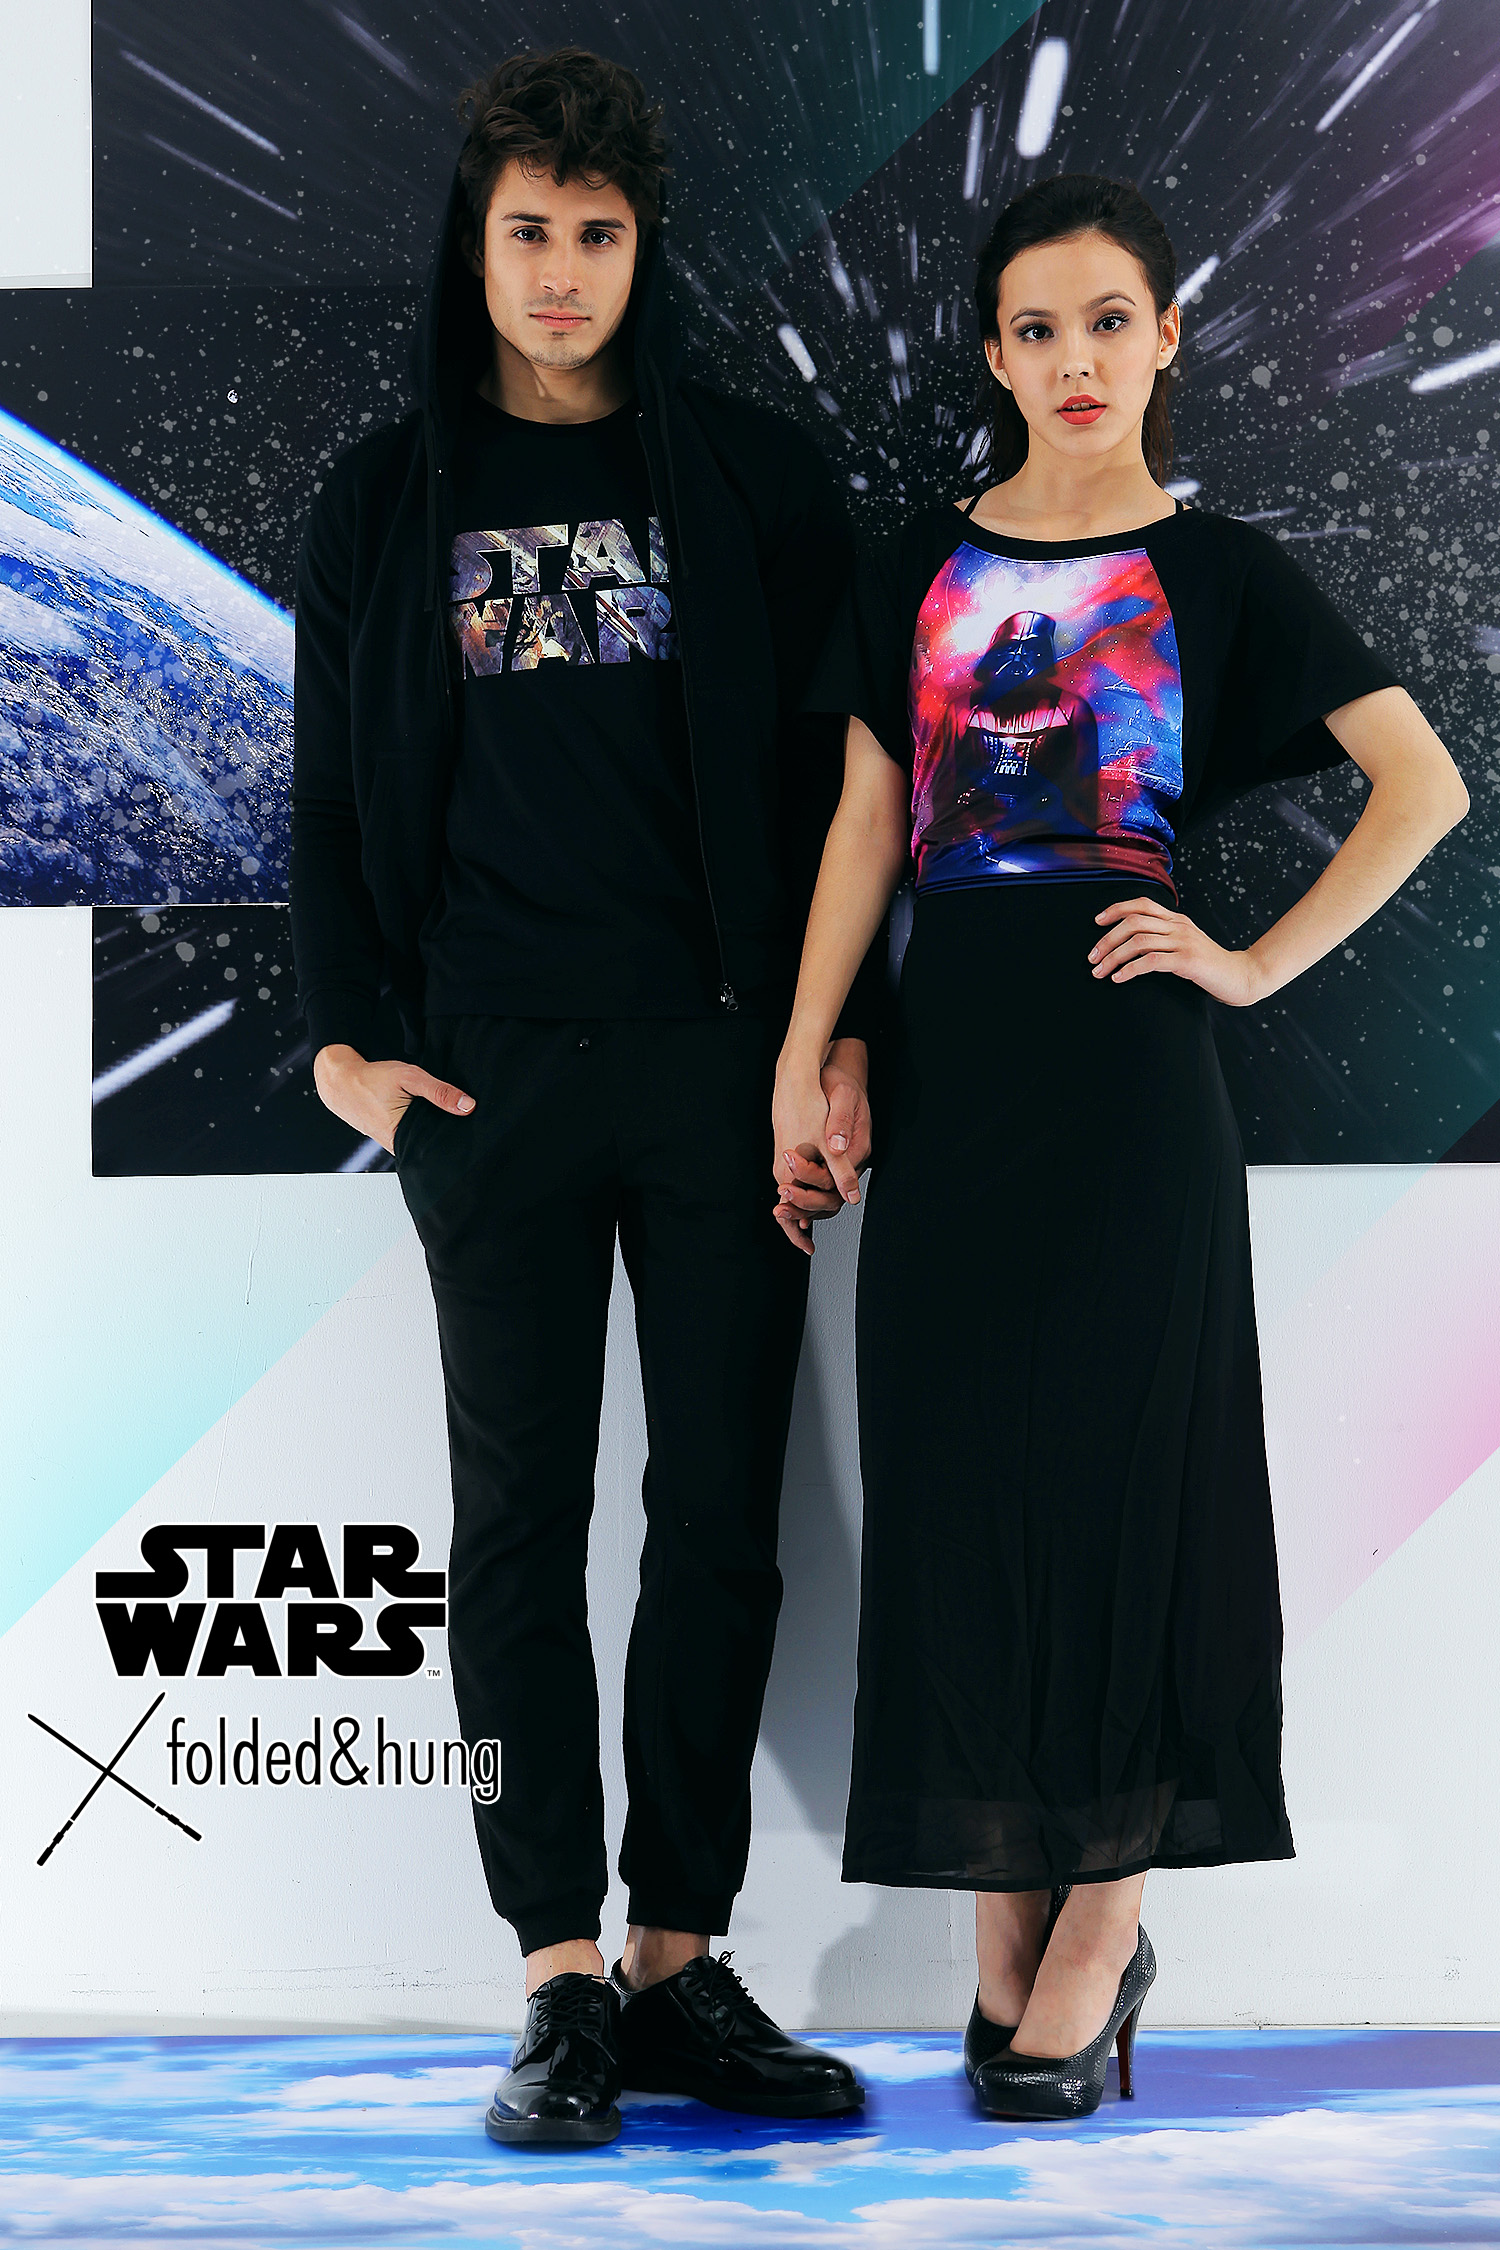 Starwars Folded and hung Fashion 16